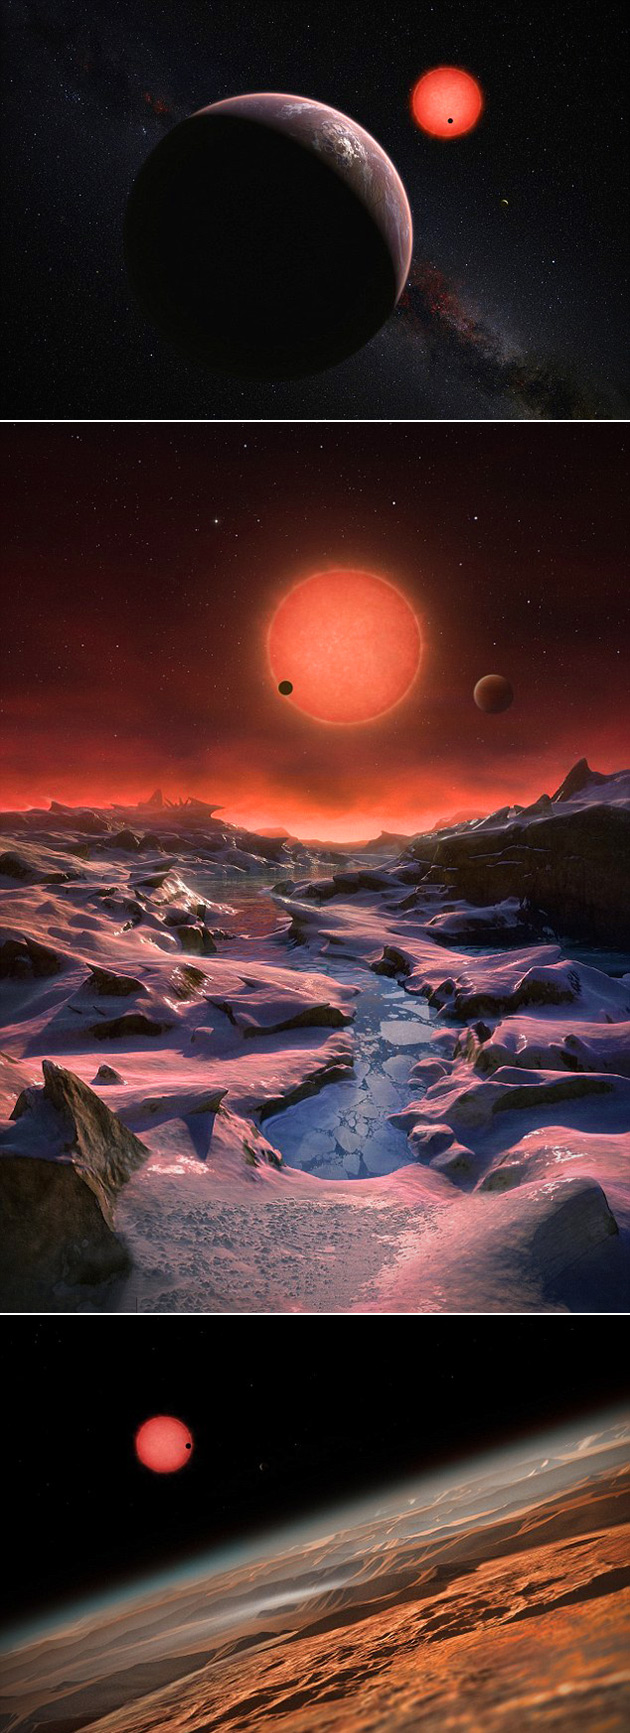 Earth-Like Habitable Worlds